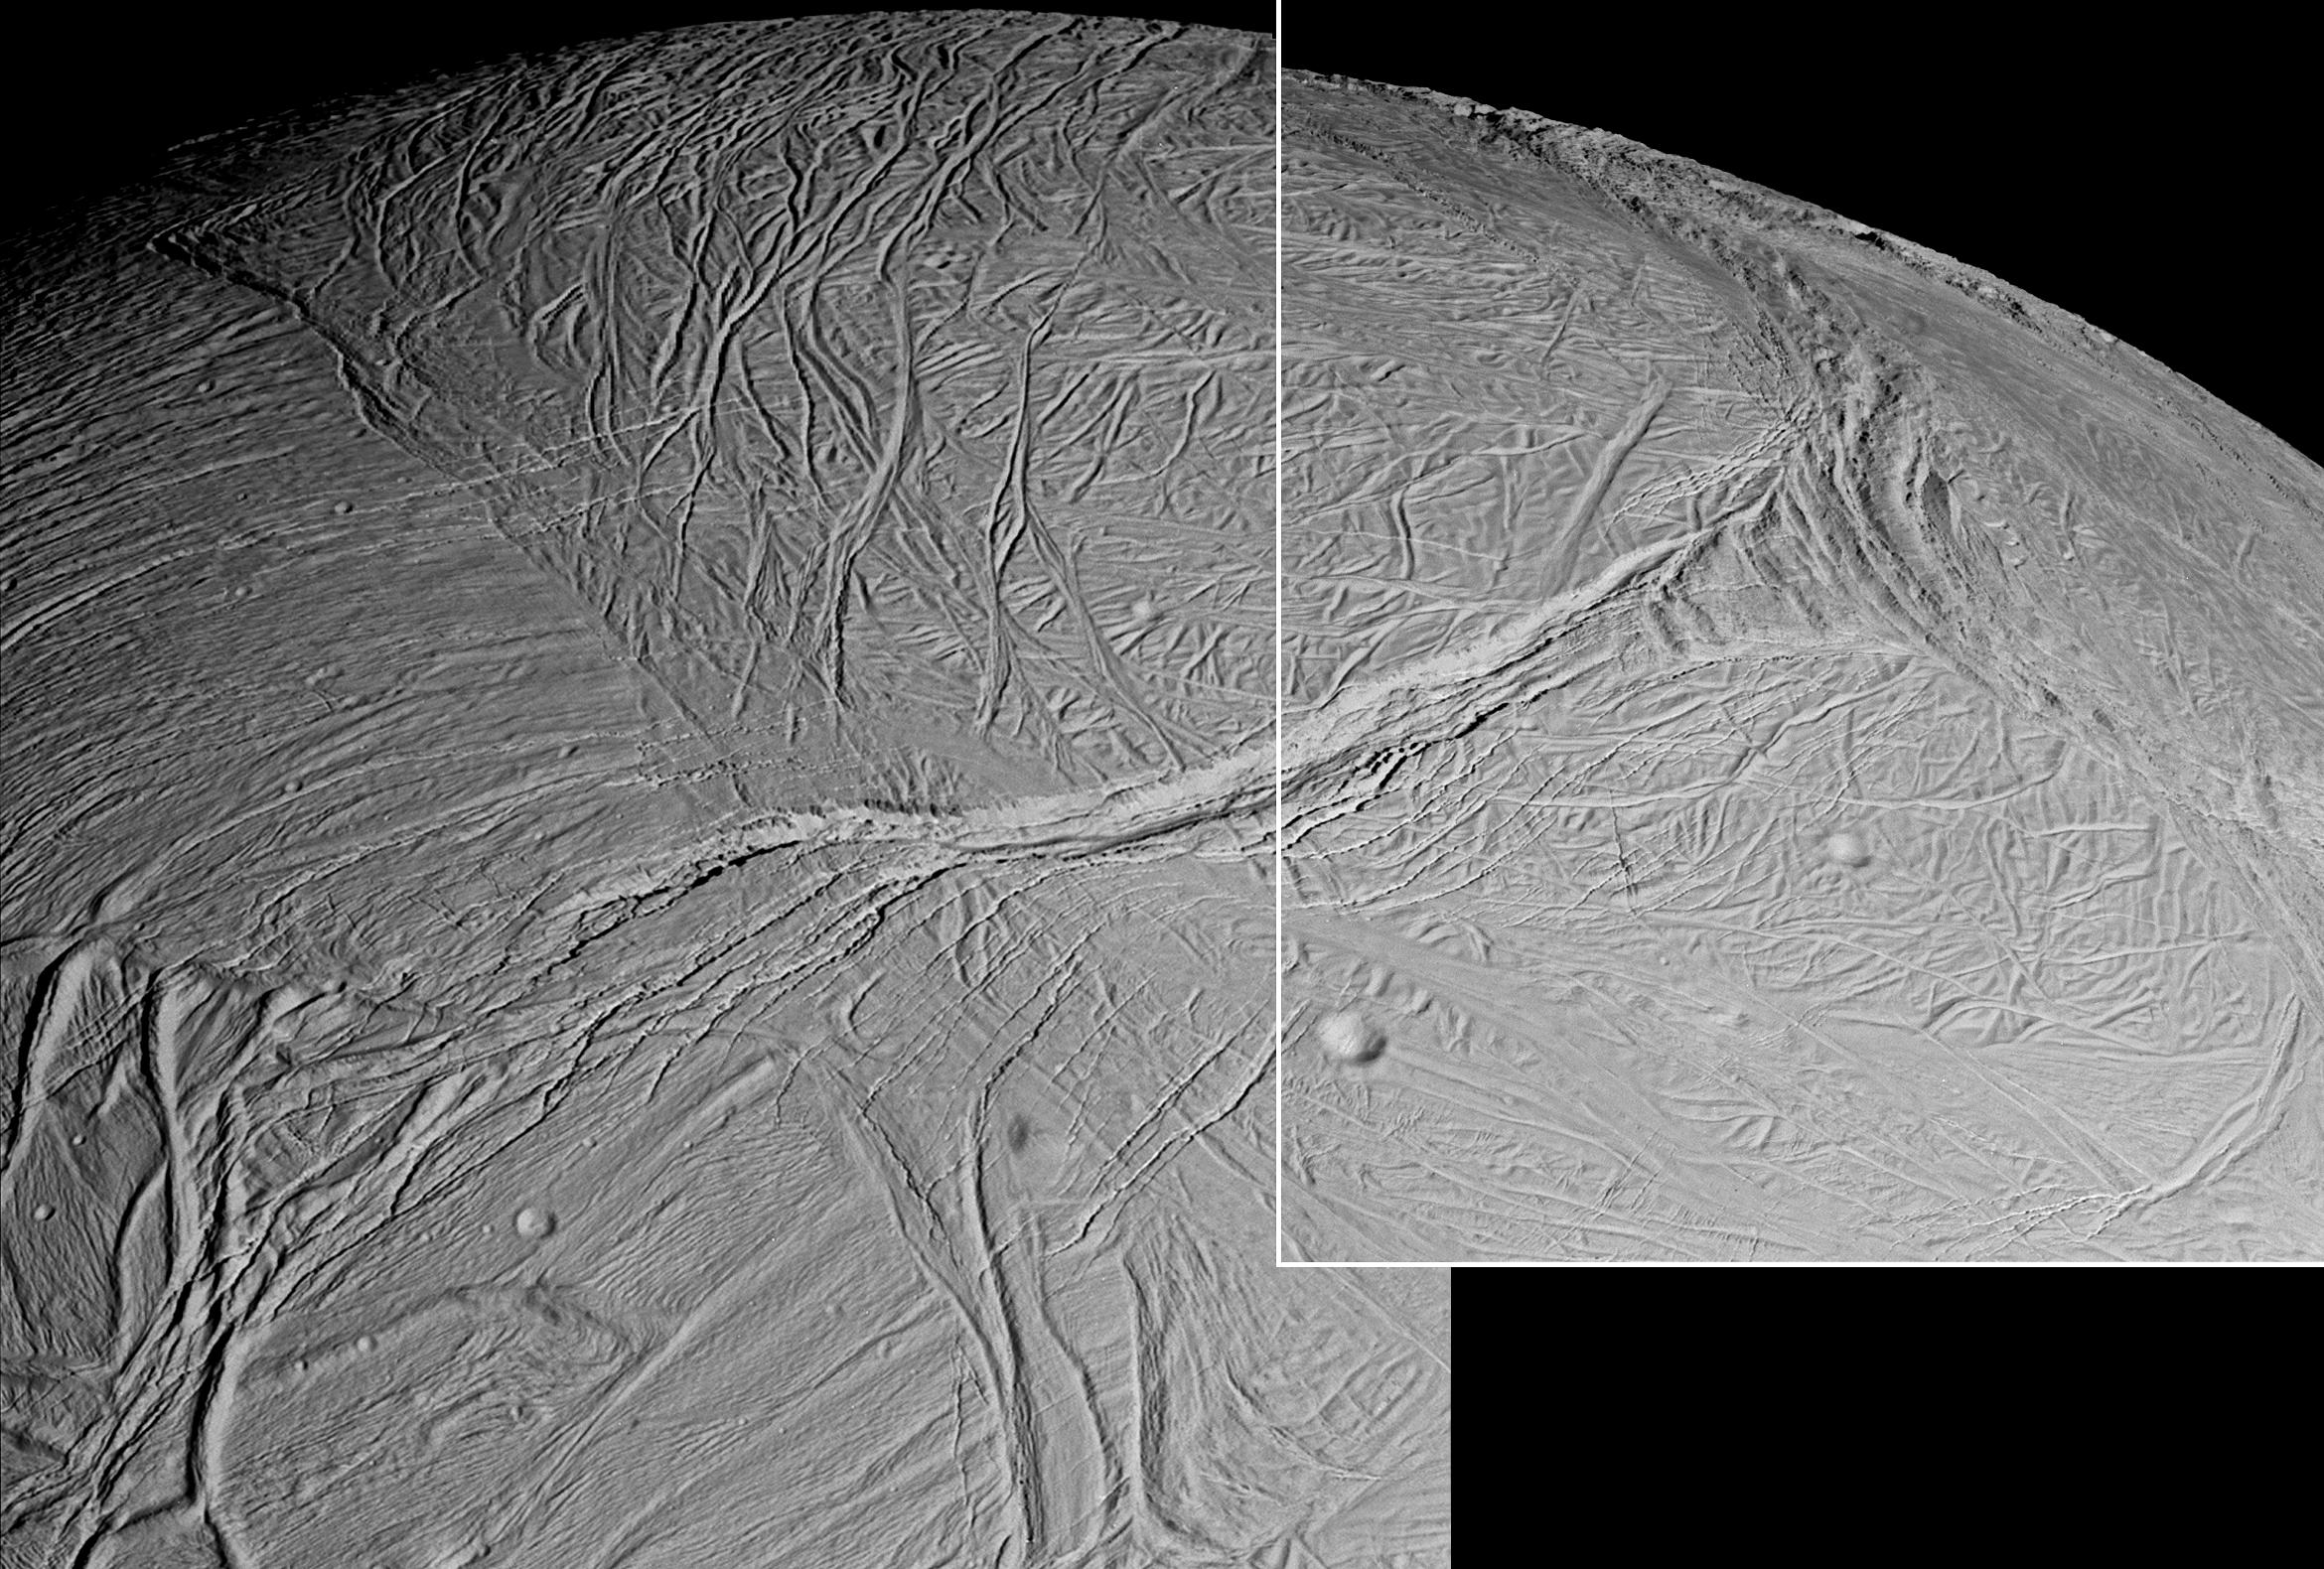 Enceladus' myriad of faults, fractures, folds, troughs and craters